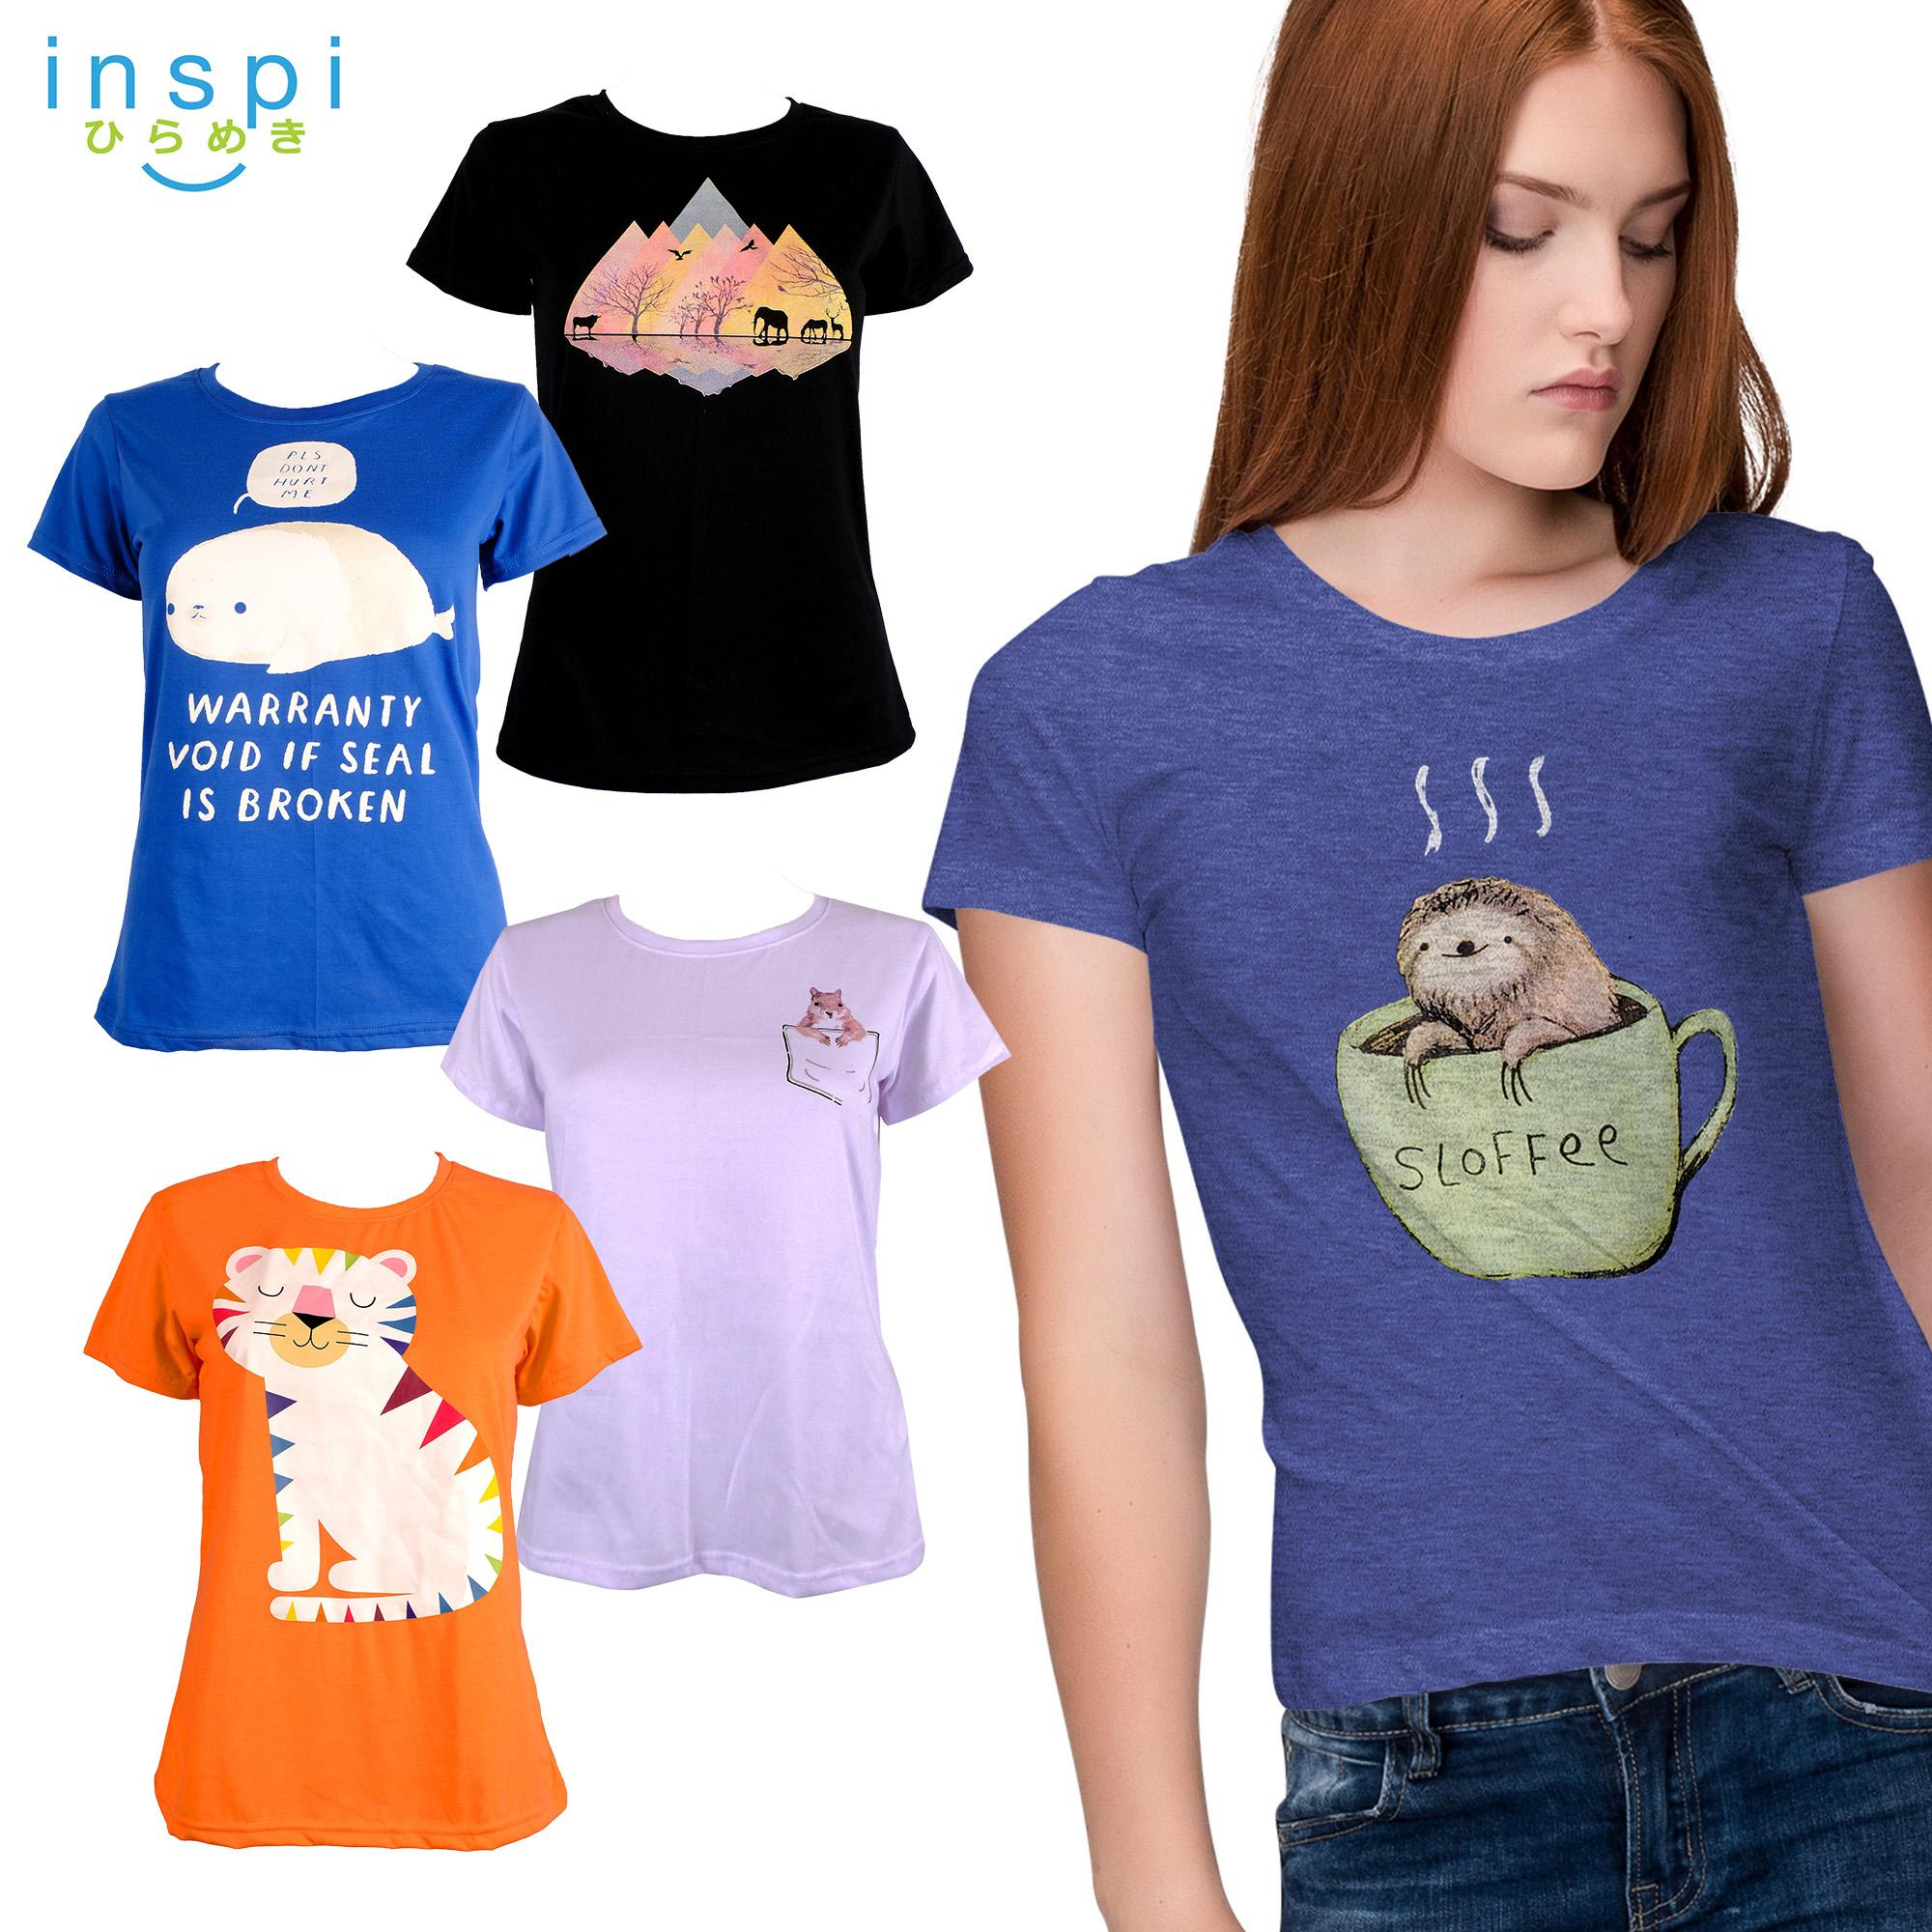 39c197505597 INSPI Tees Ladies Pet Collection tshirt printed graphic tee Ladies t shirt  shirts women tshirts for